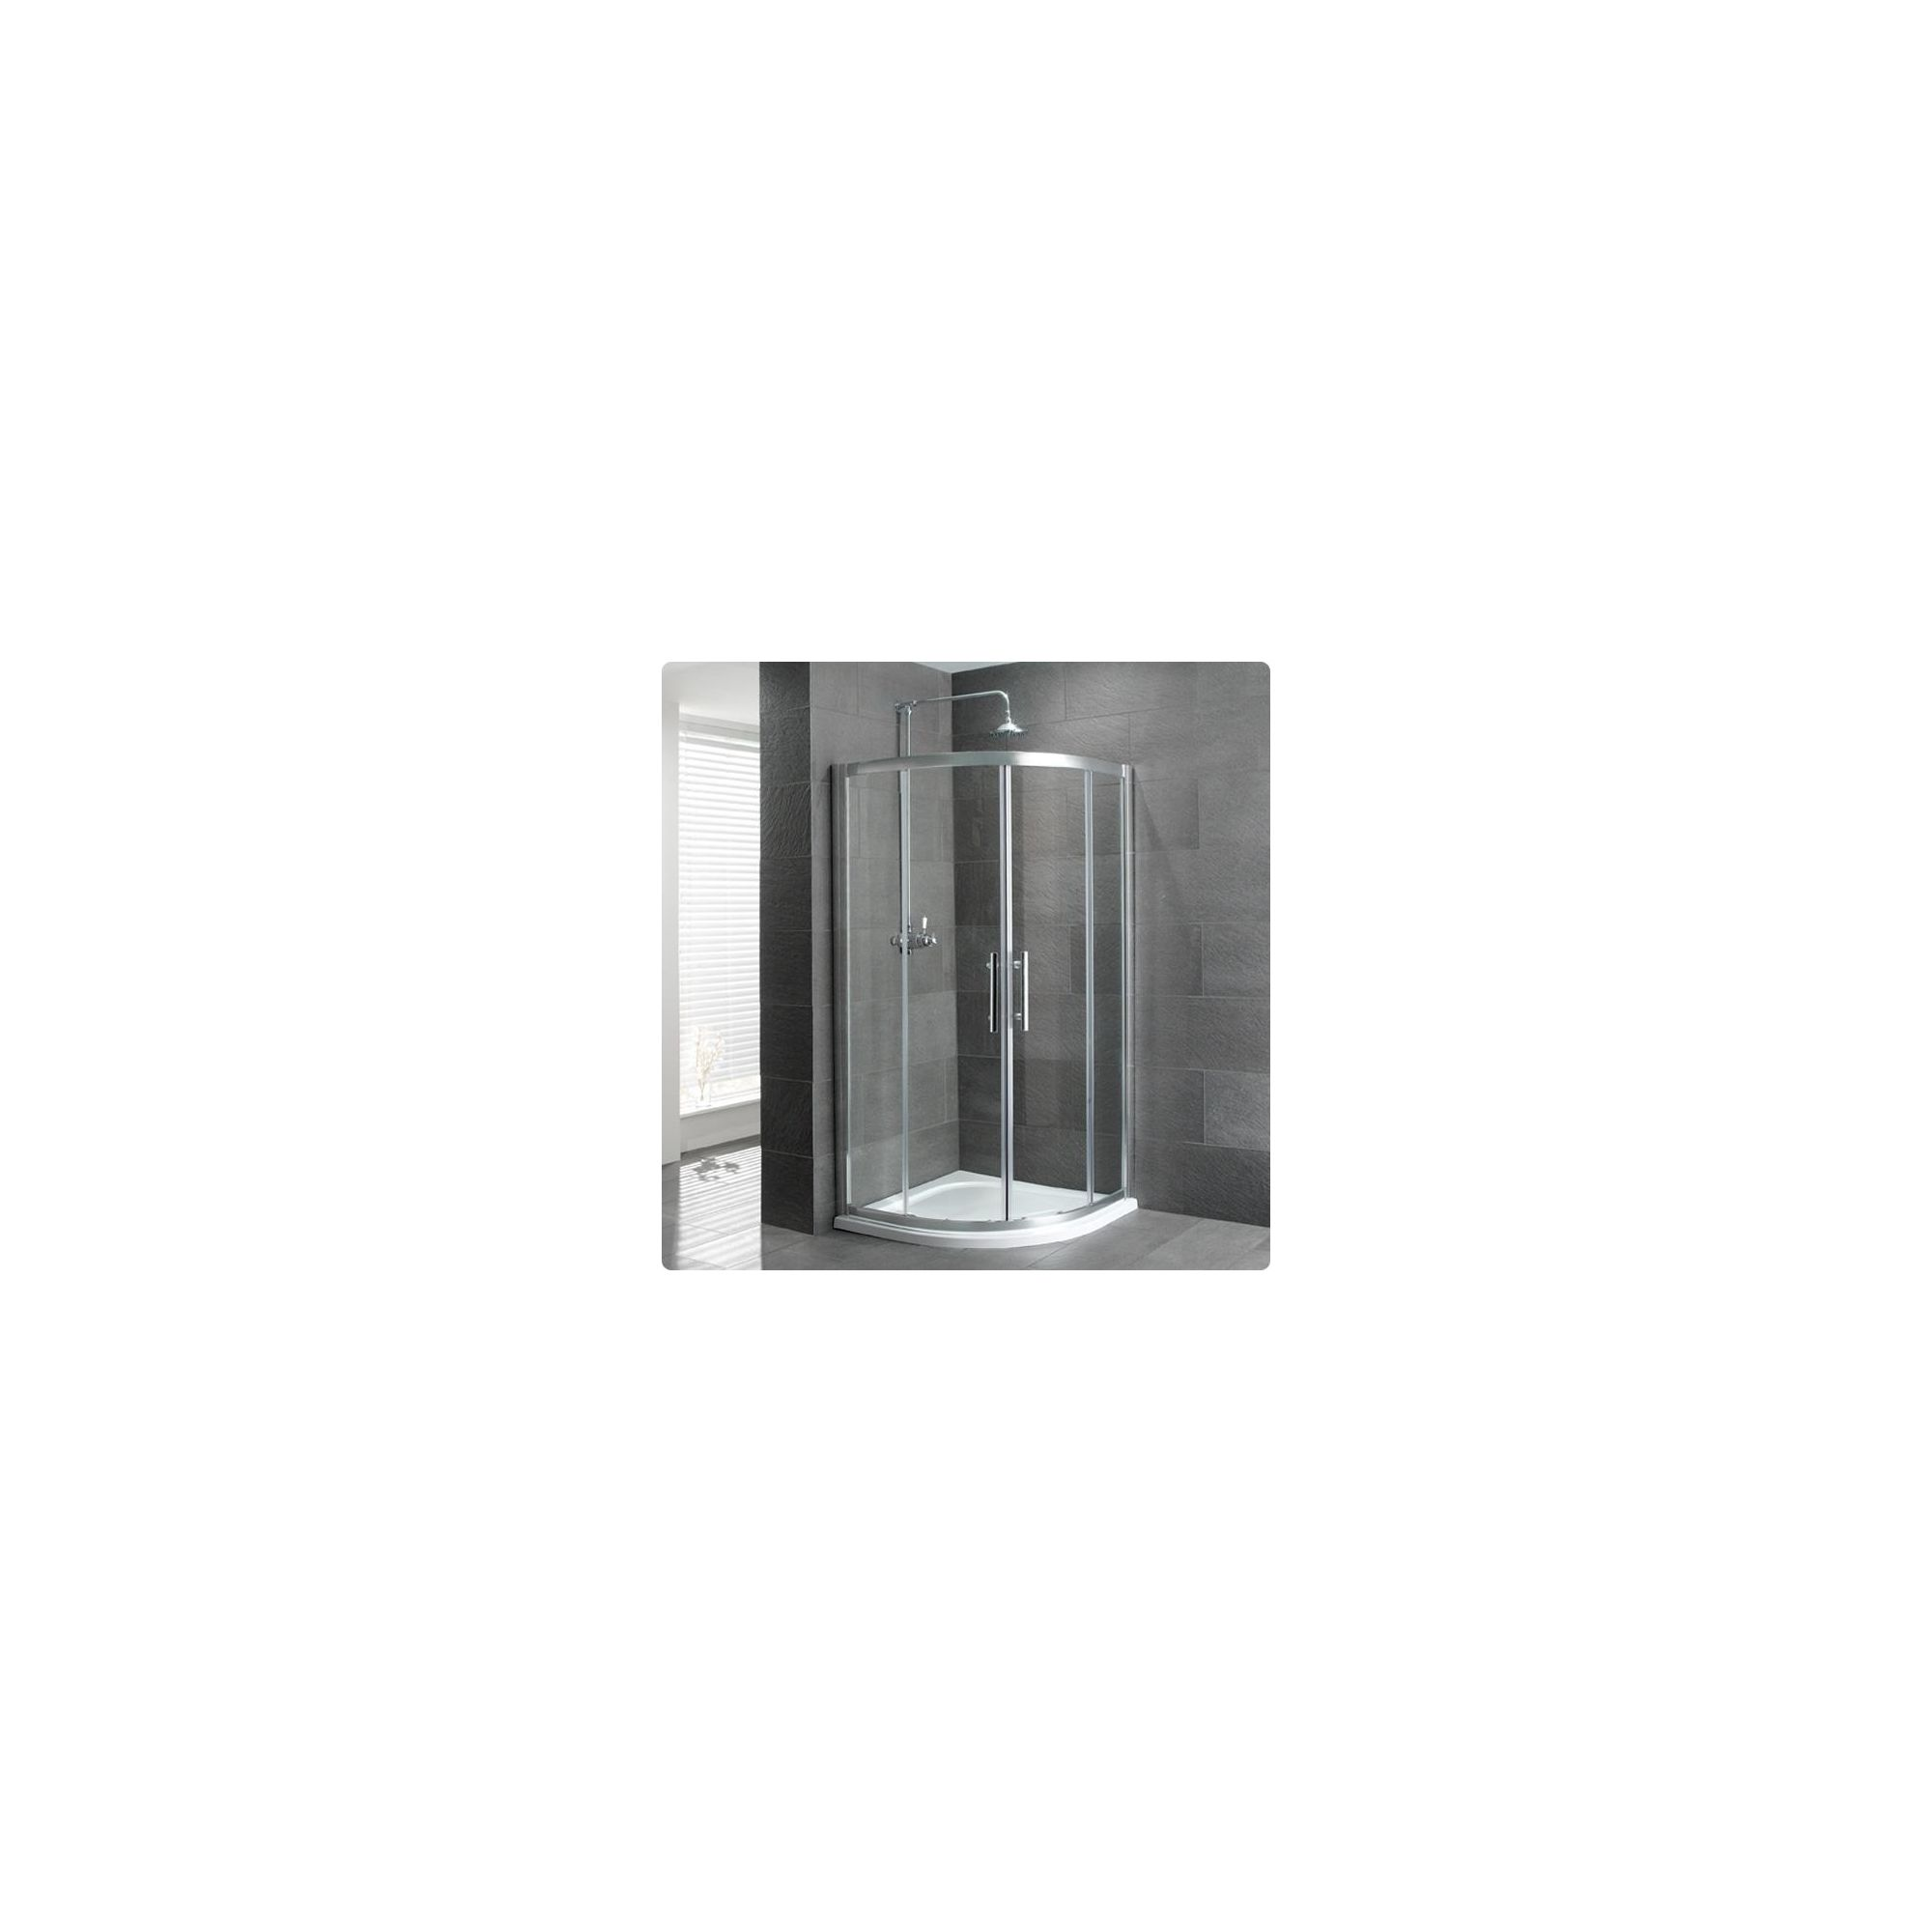 Duchy Select Silver 2 Door Quadrant Shower Enclosure 1000mm, Standard Tray, 6mm Glass at Tesco Direct